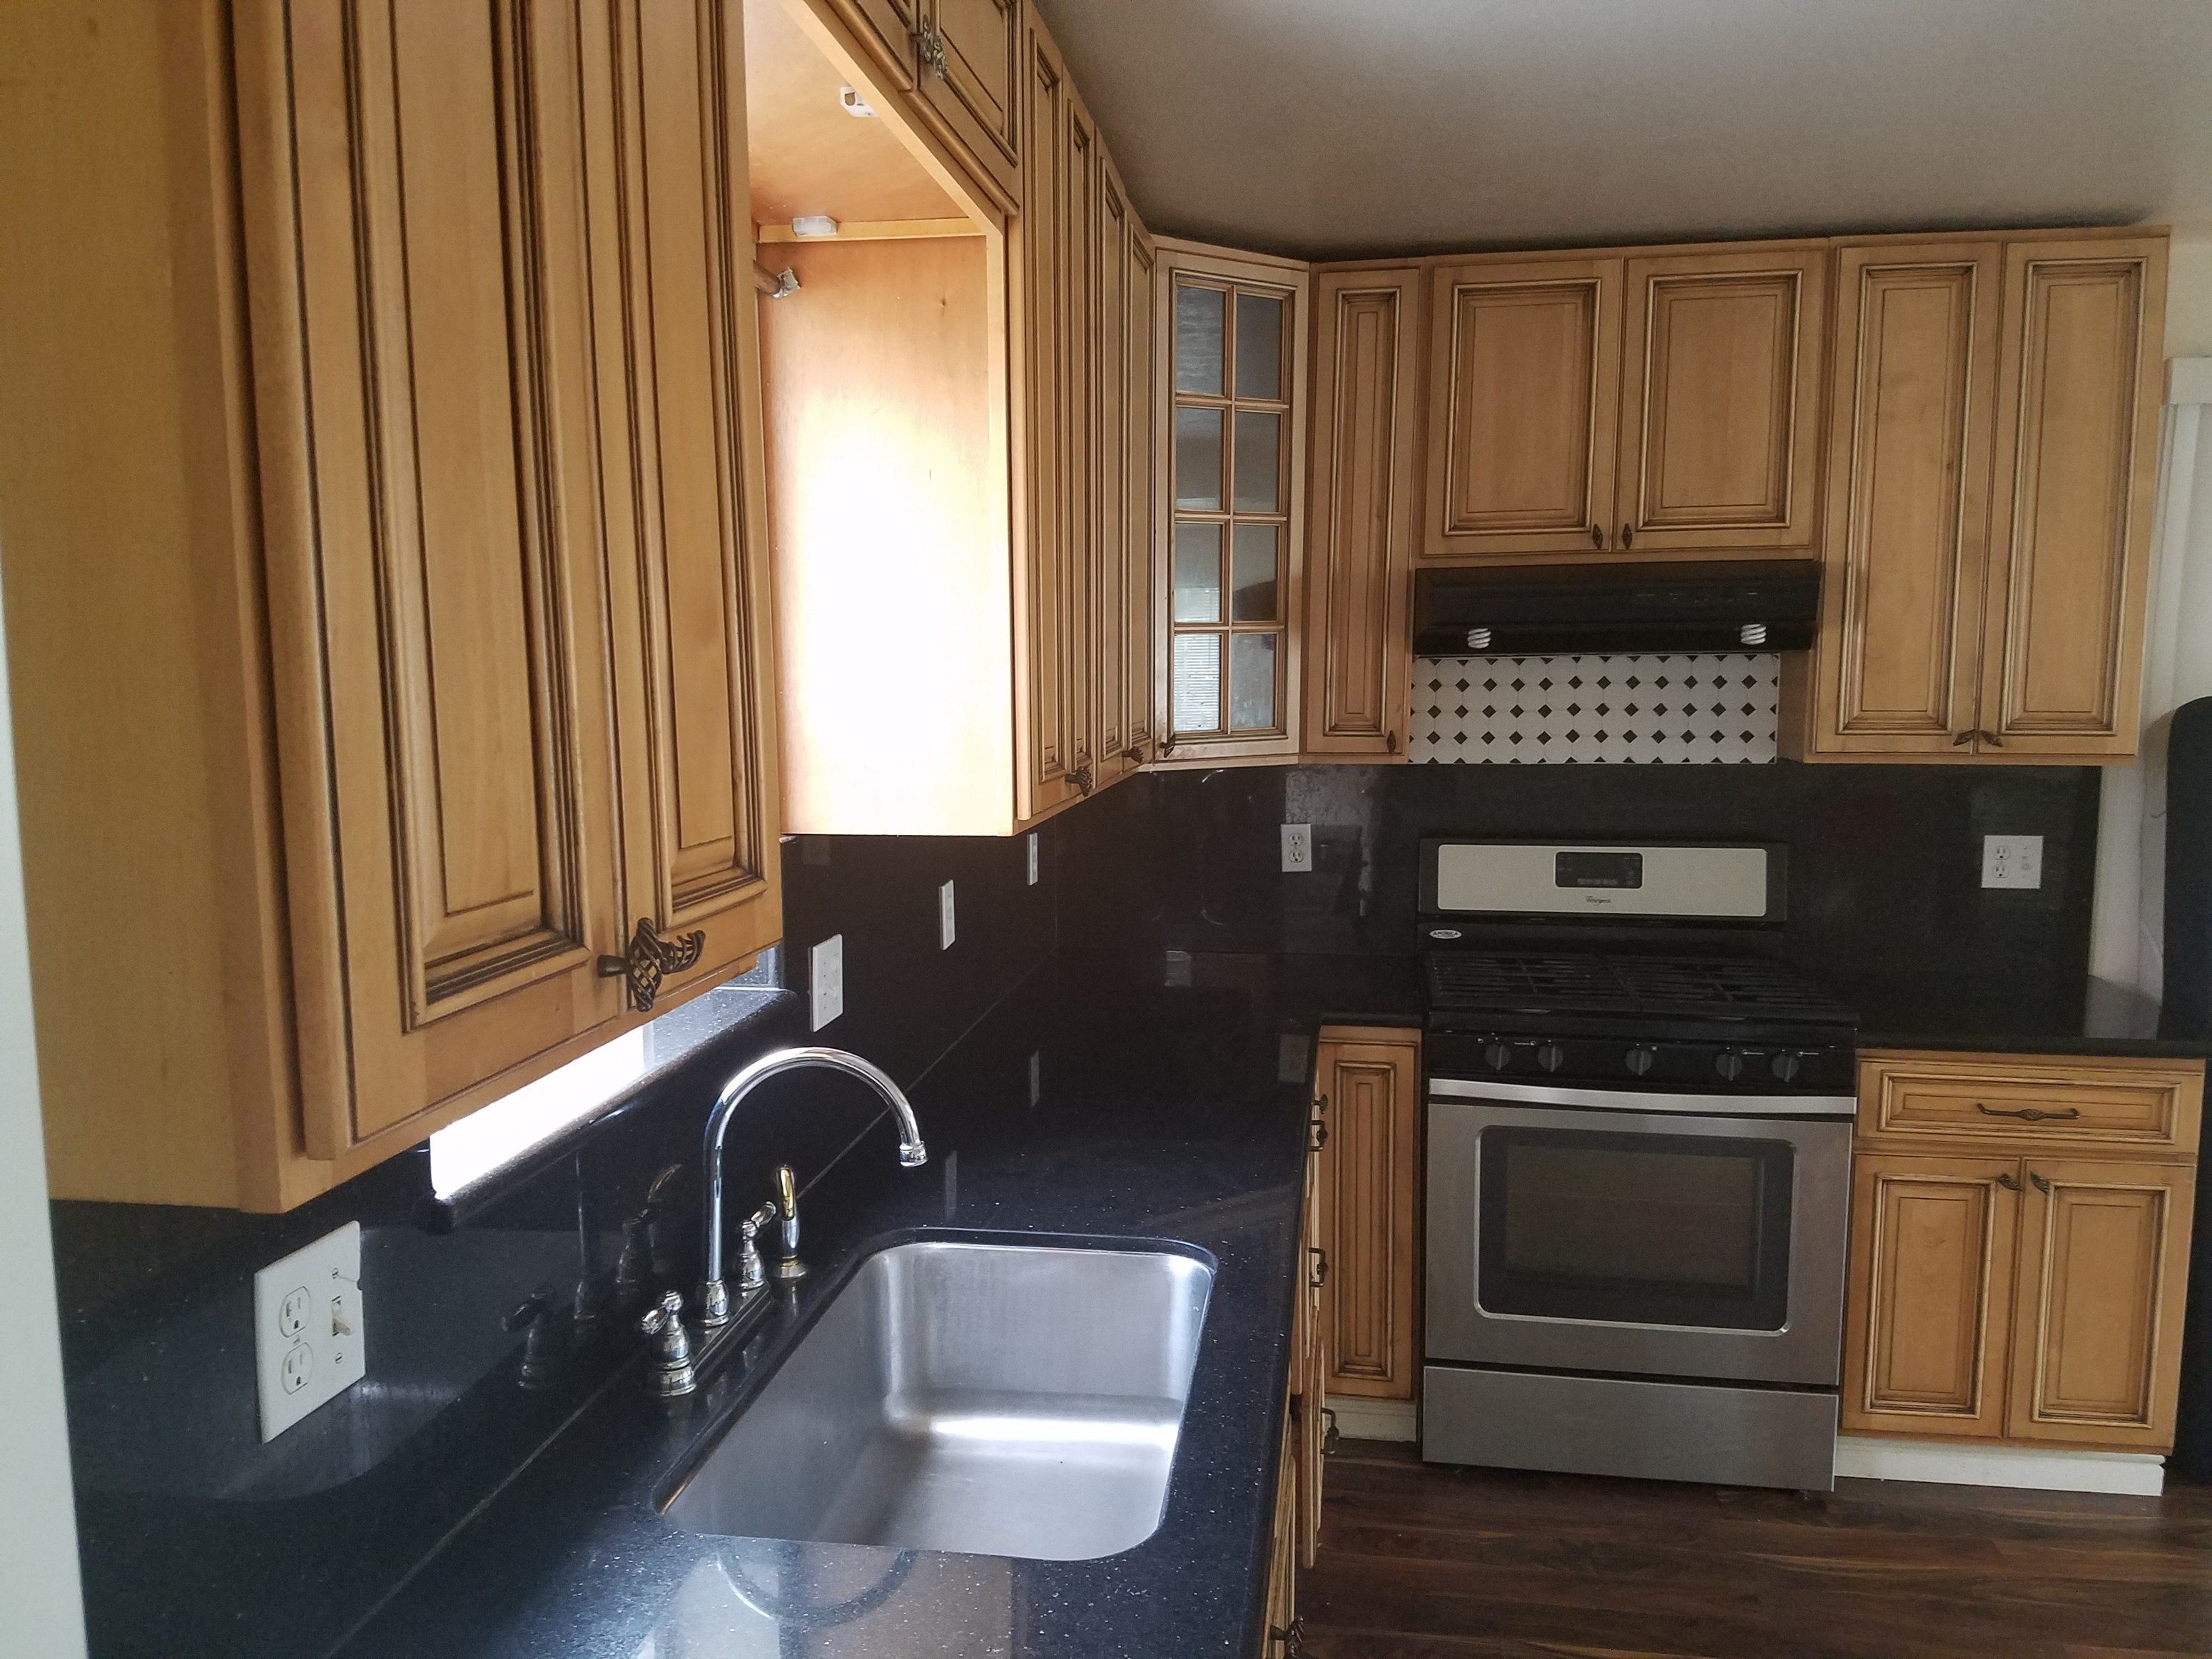 5 bedrooms 25 bath unit available for rent